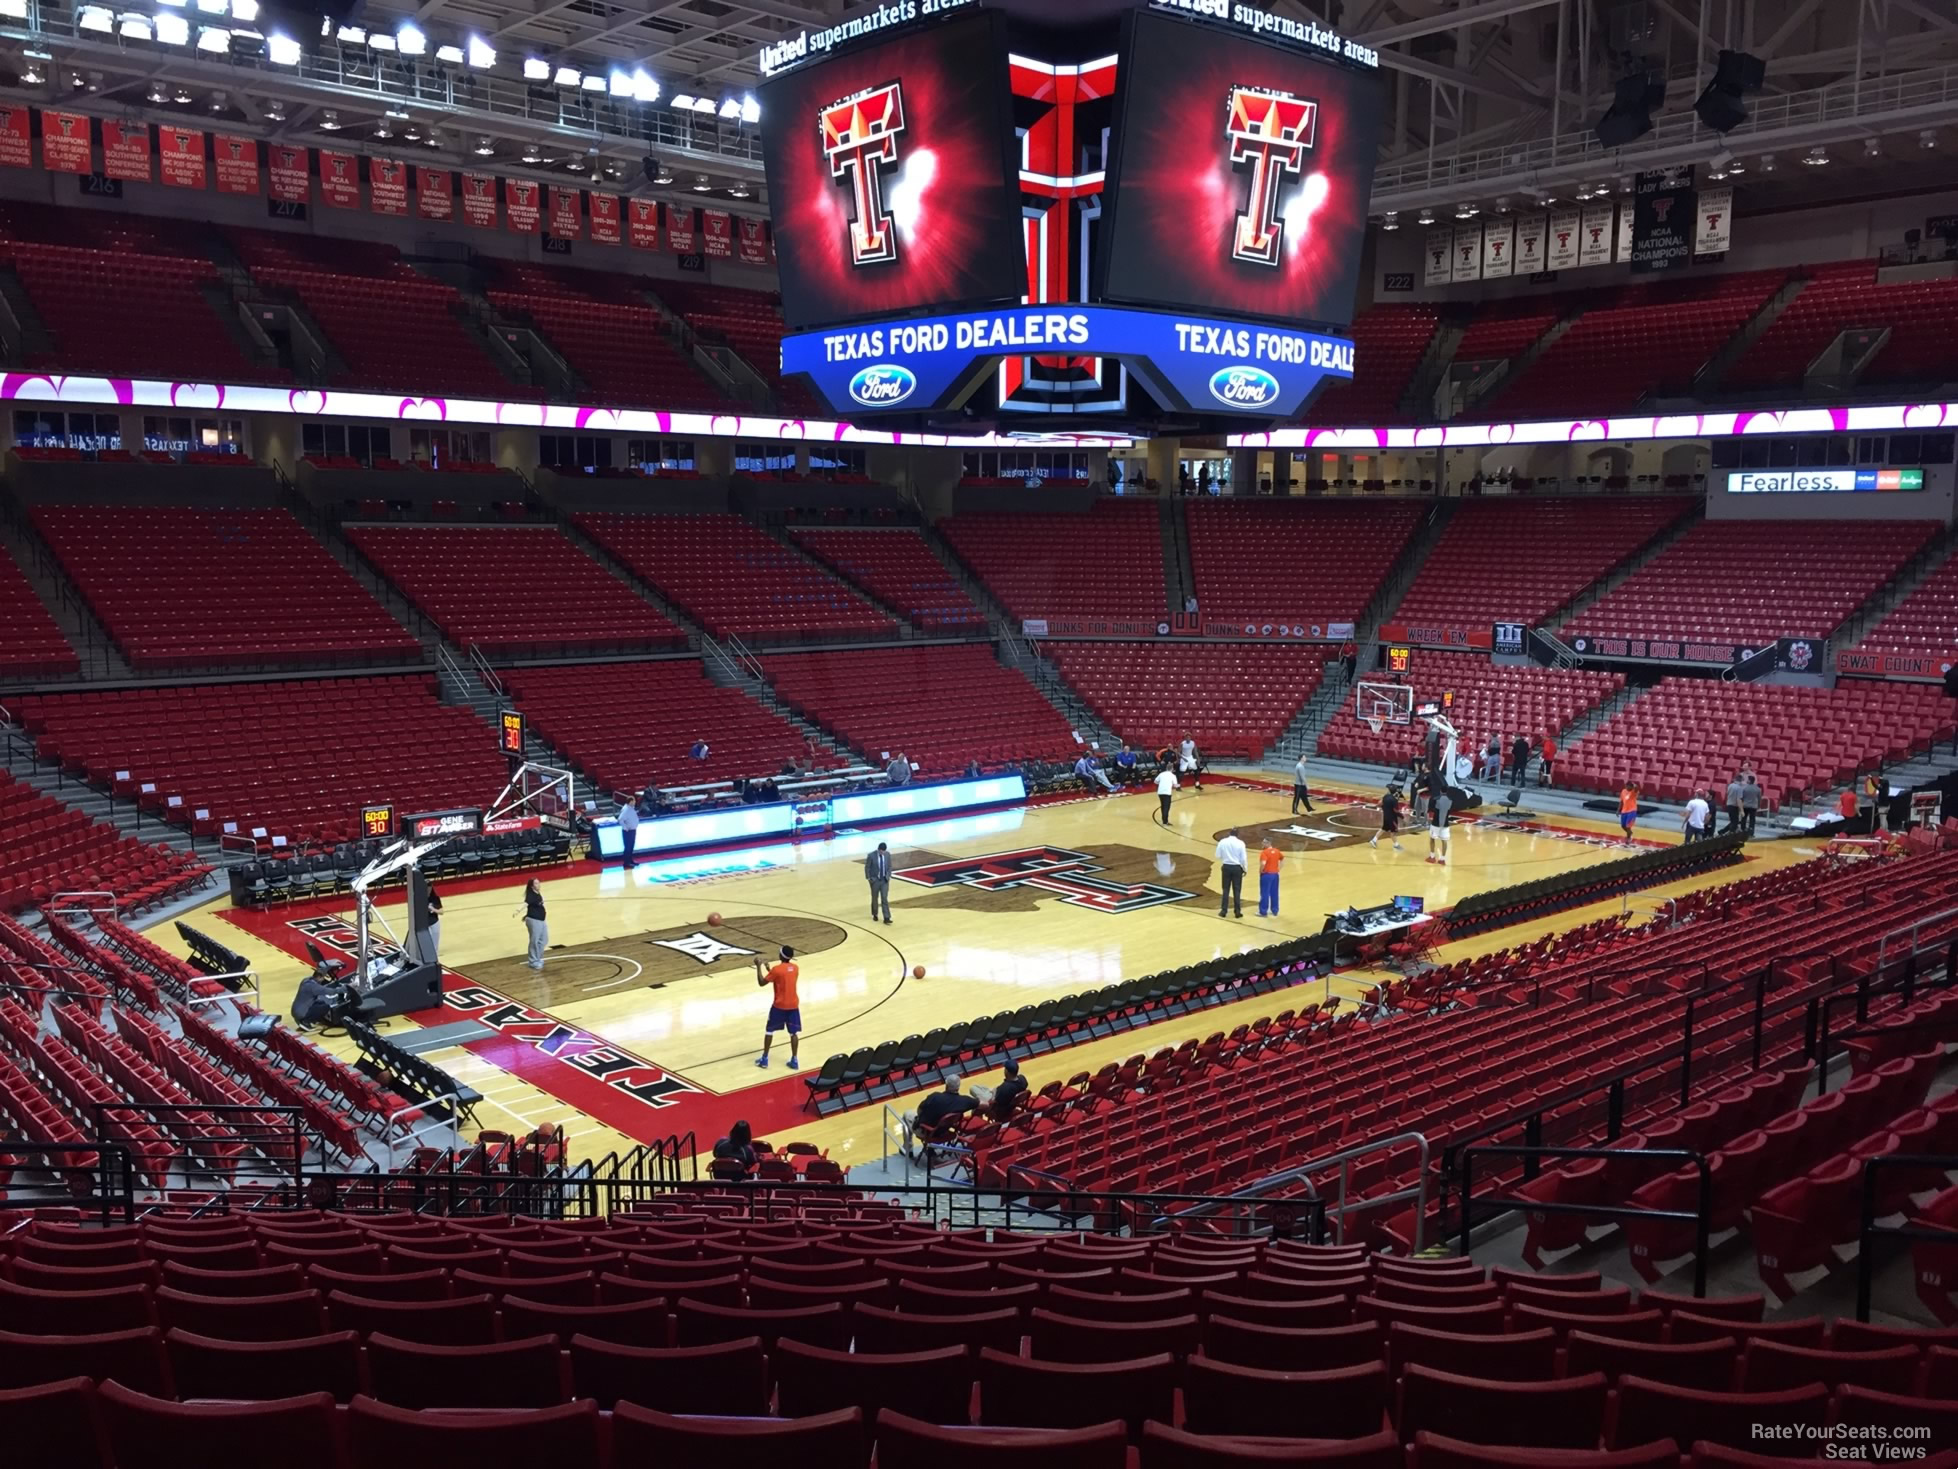 United Supermarkets Arena Section 104 Rateyourseats Com